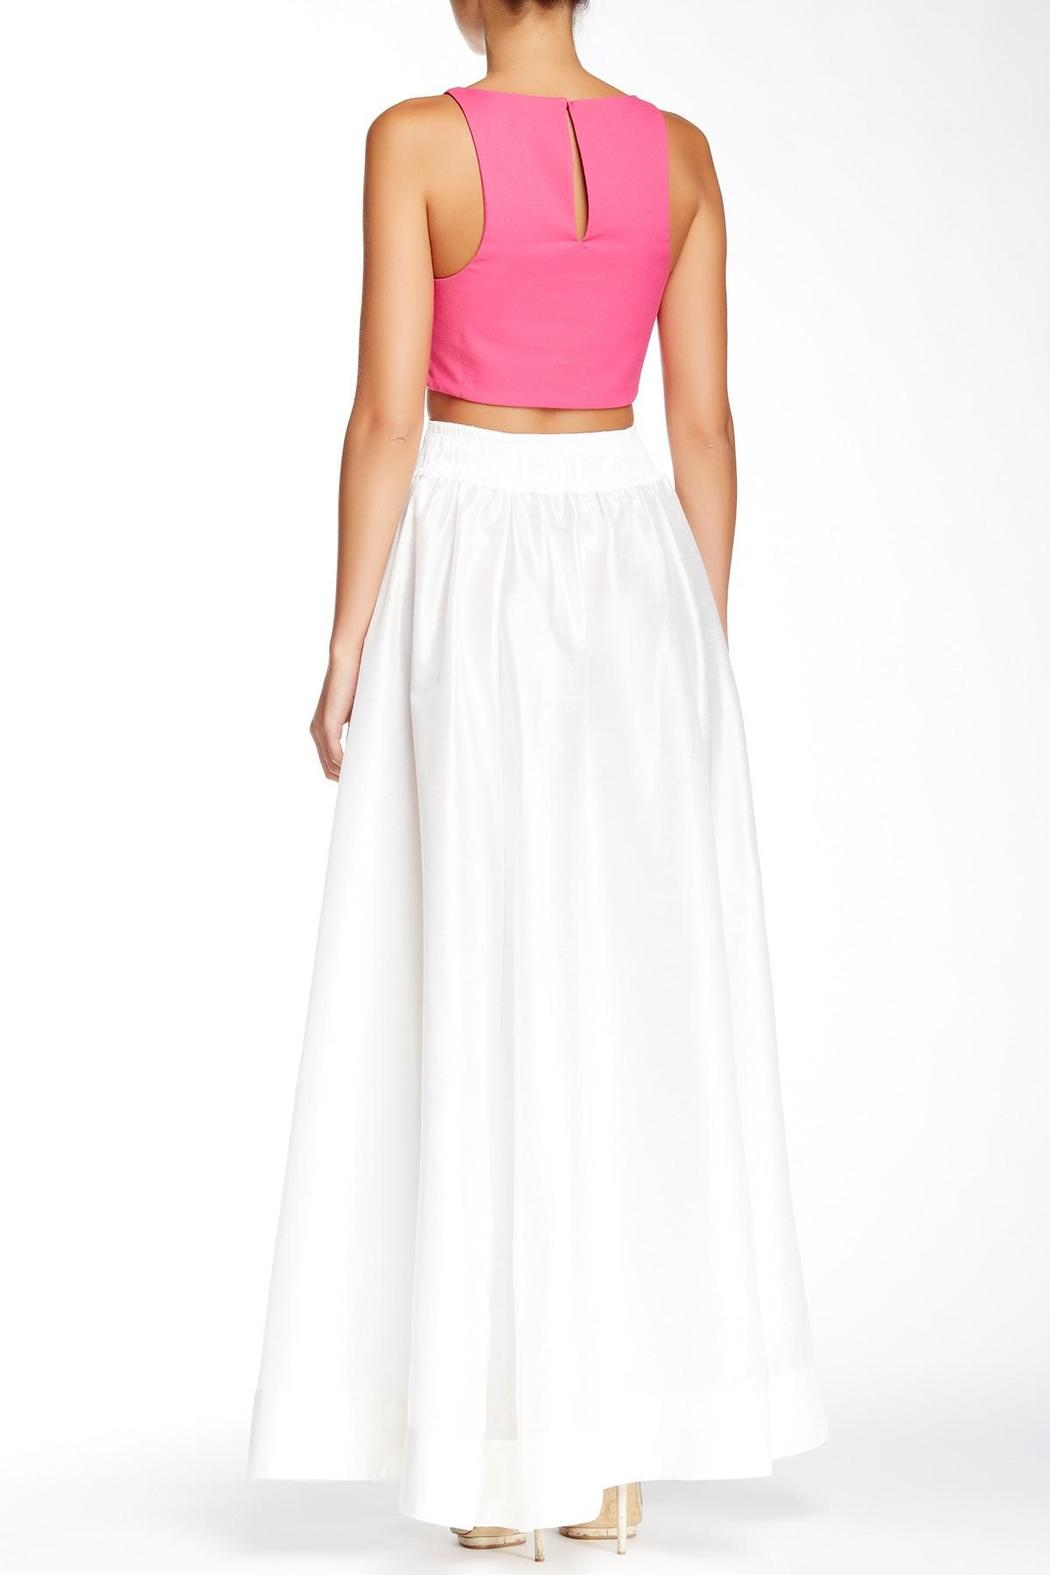 MHGS White Holiday Maxi - Front Full Image